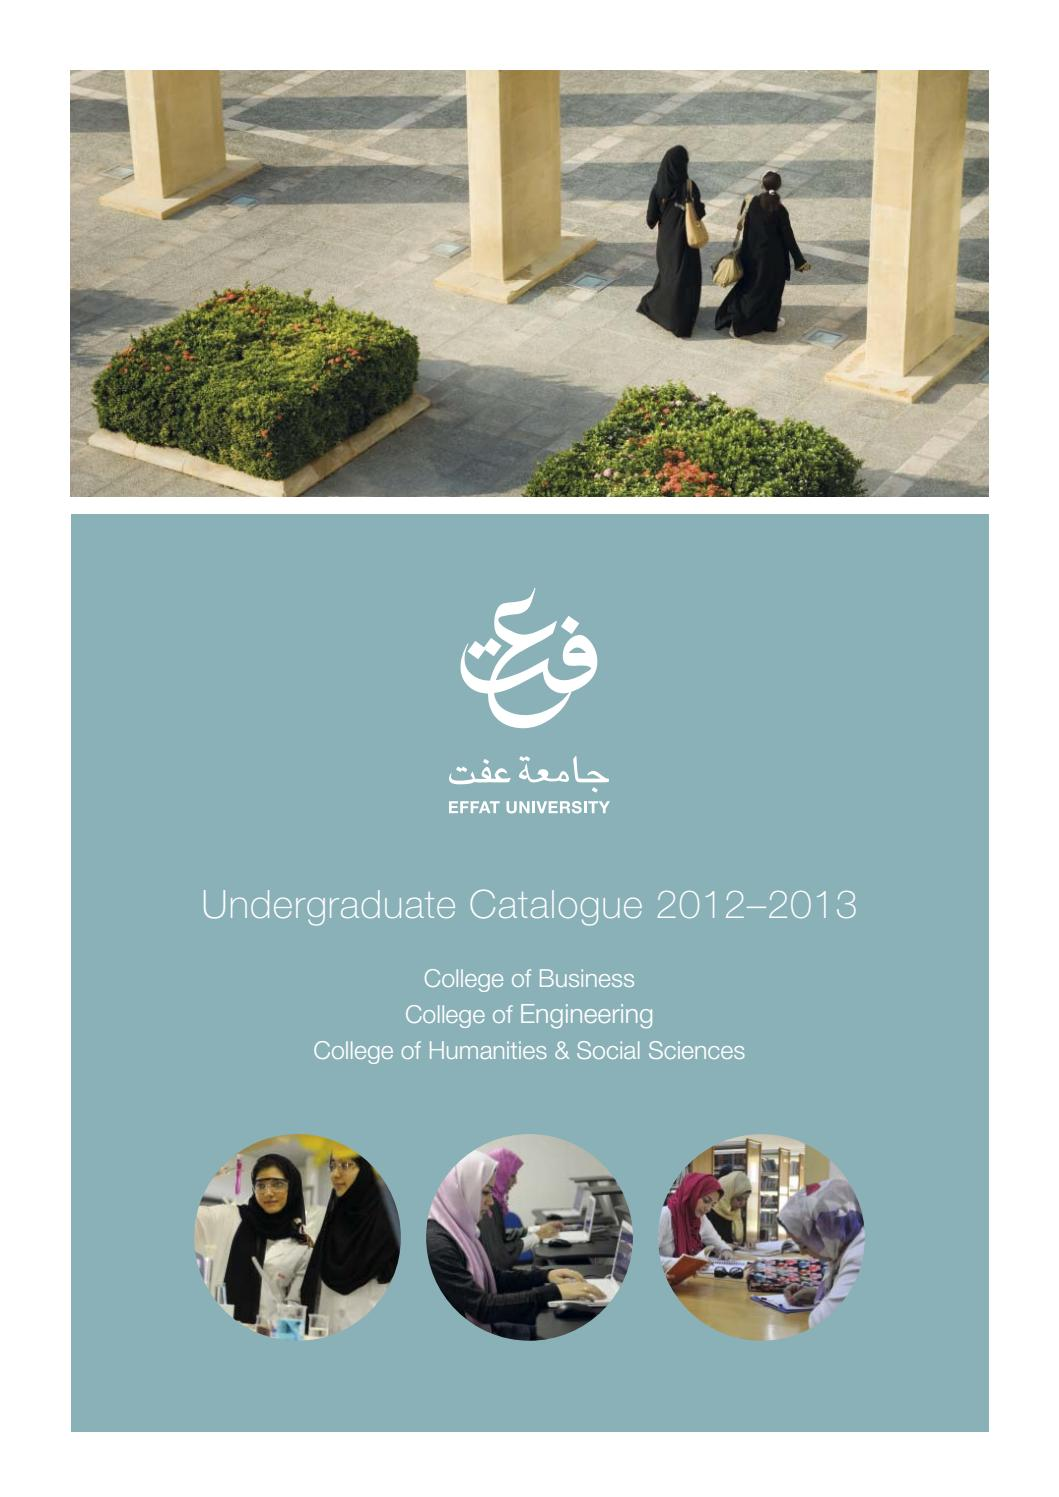 Effat University Undergraduate Catalogue for the academic